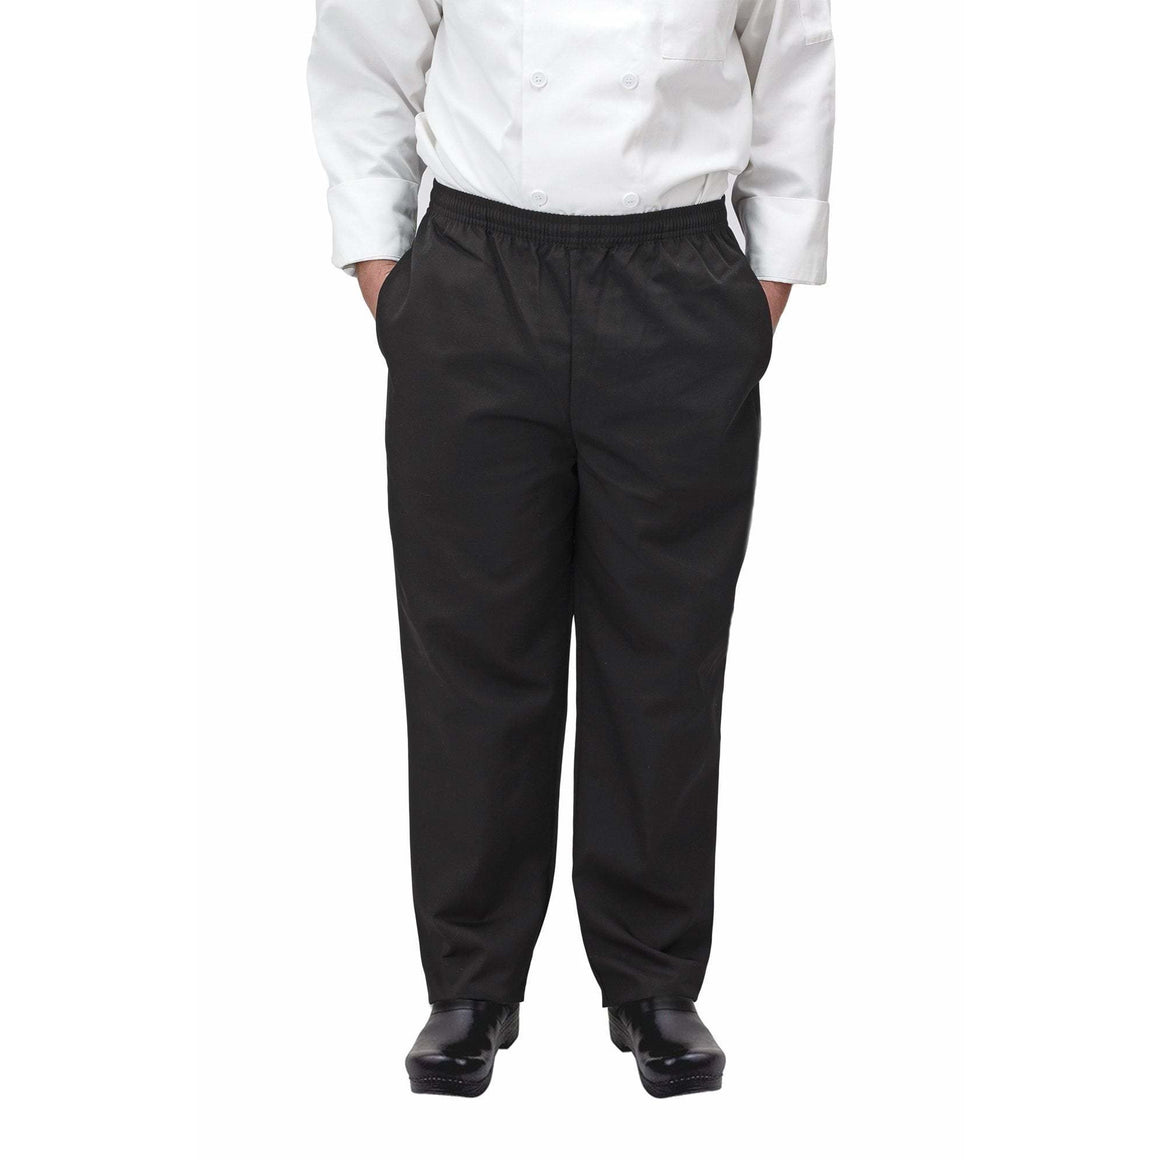 Winco - UNF-2KXL - Chef pants, black, XL - Apparel